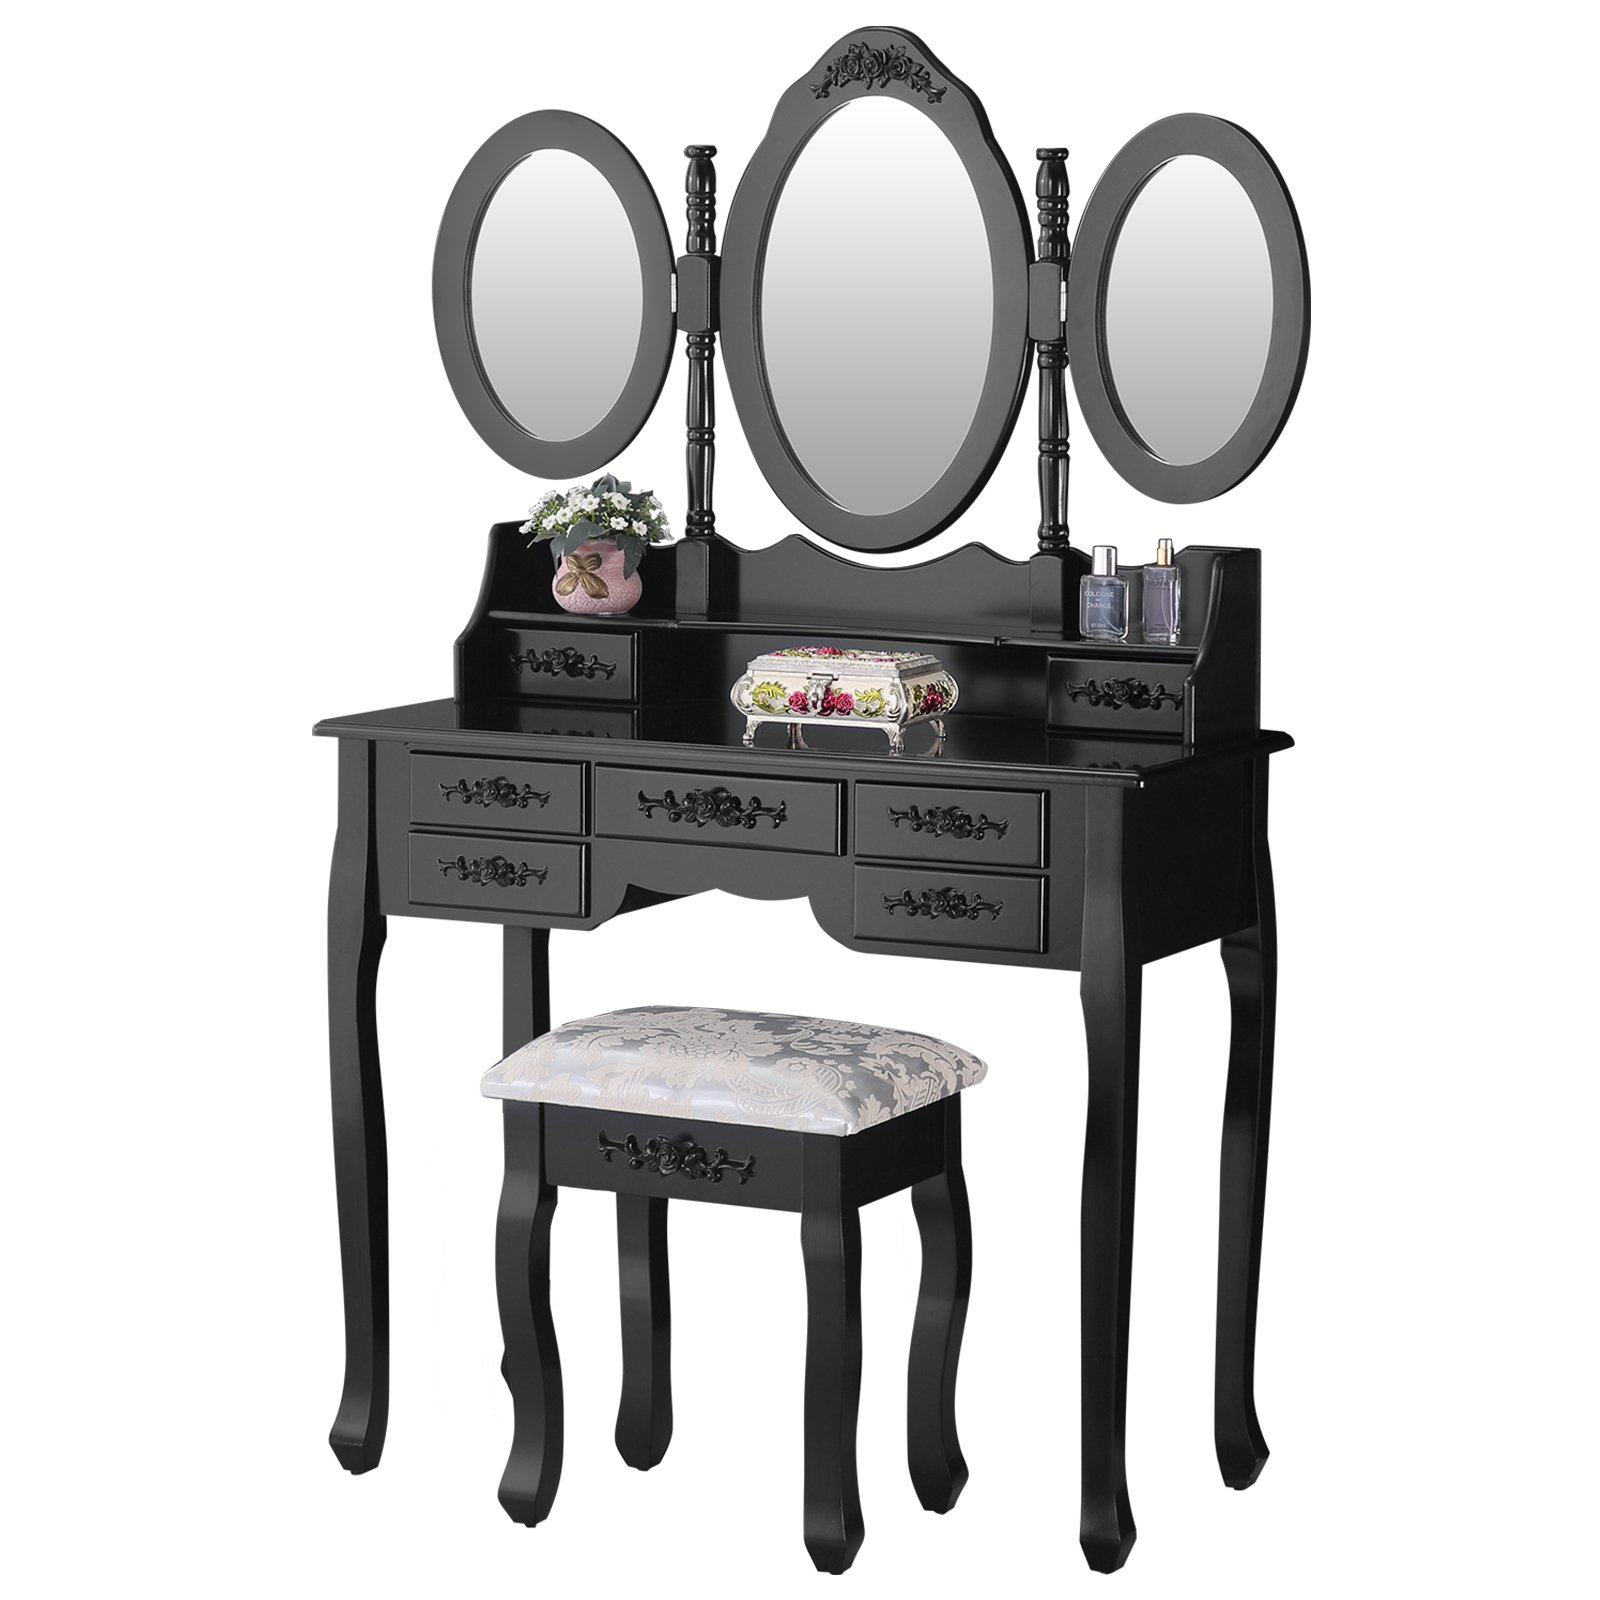 Mecor Makeup Vanity with 7 Drawers,Vanity Table Set w/Tri-fold Mirror Girls Women Wood Dressing Table Cushioned Stool Bedroom Furniture Black by mecor